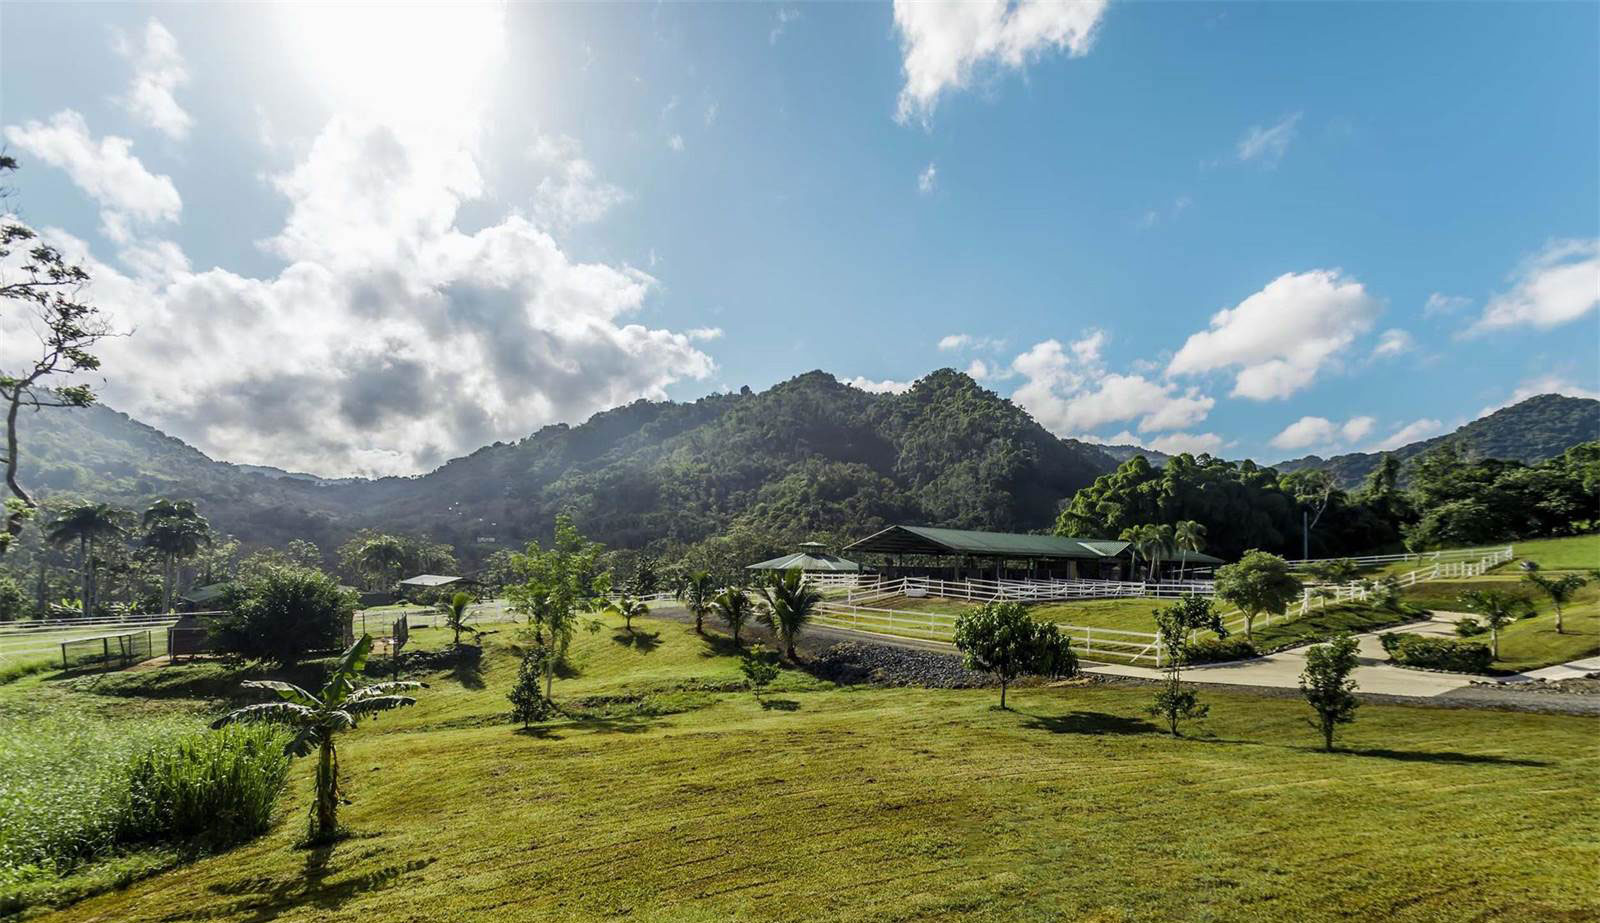 The ranch and recreational facilities are outstanding. An indoor equestrian arena, round pen, loose boxes, and stables for horses, donkeys, llamas, pigs, goats, and sheep are among the delights.